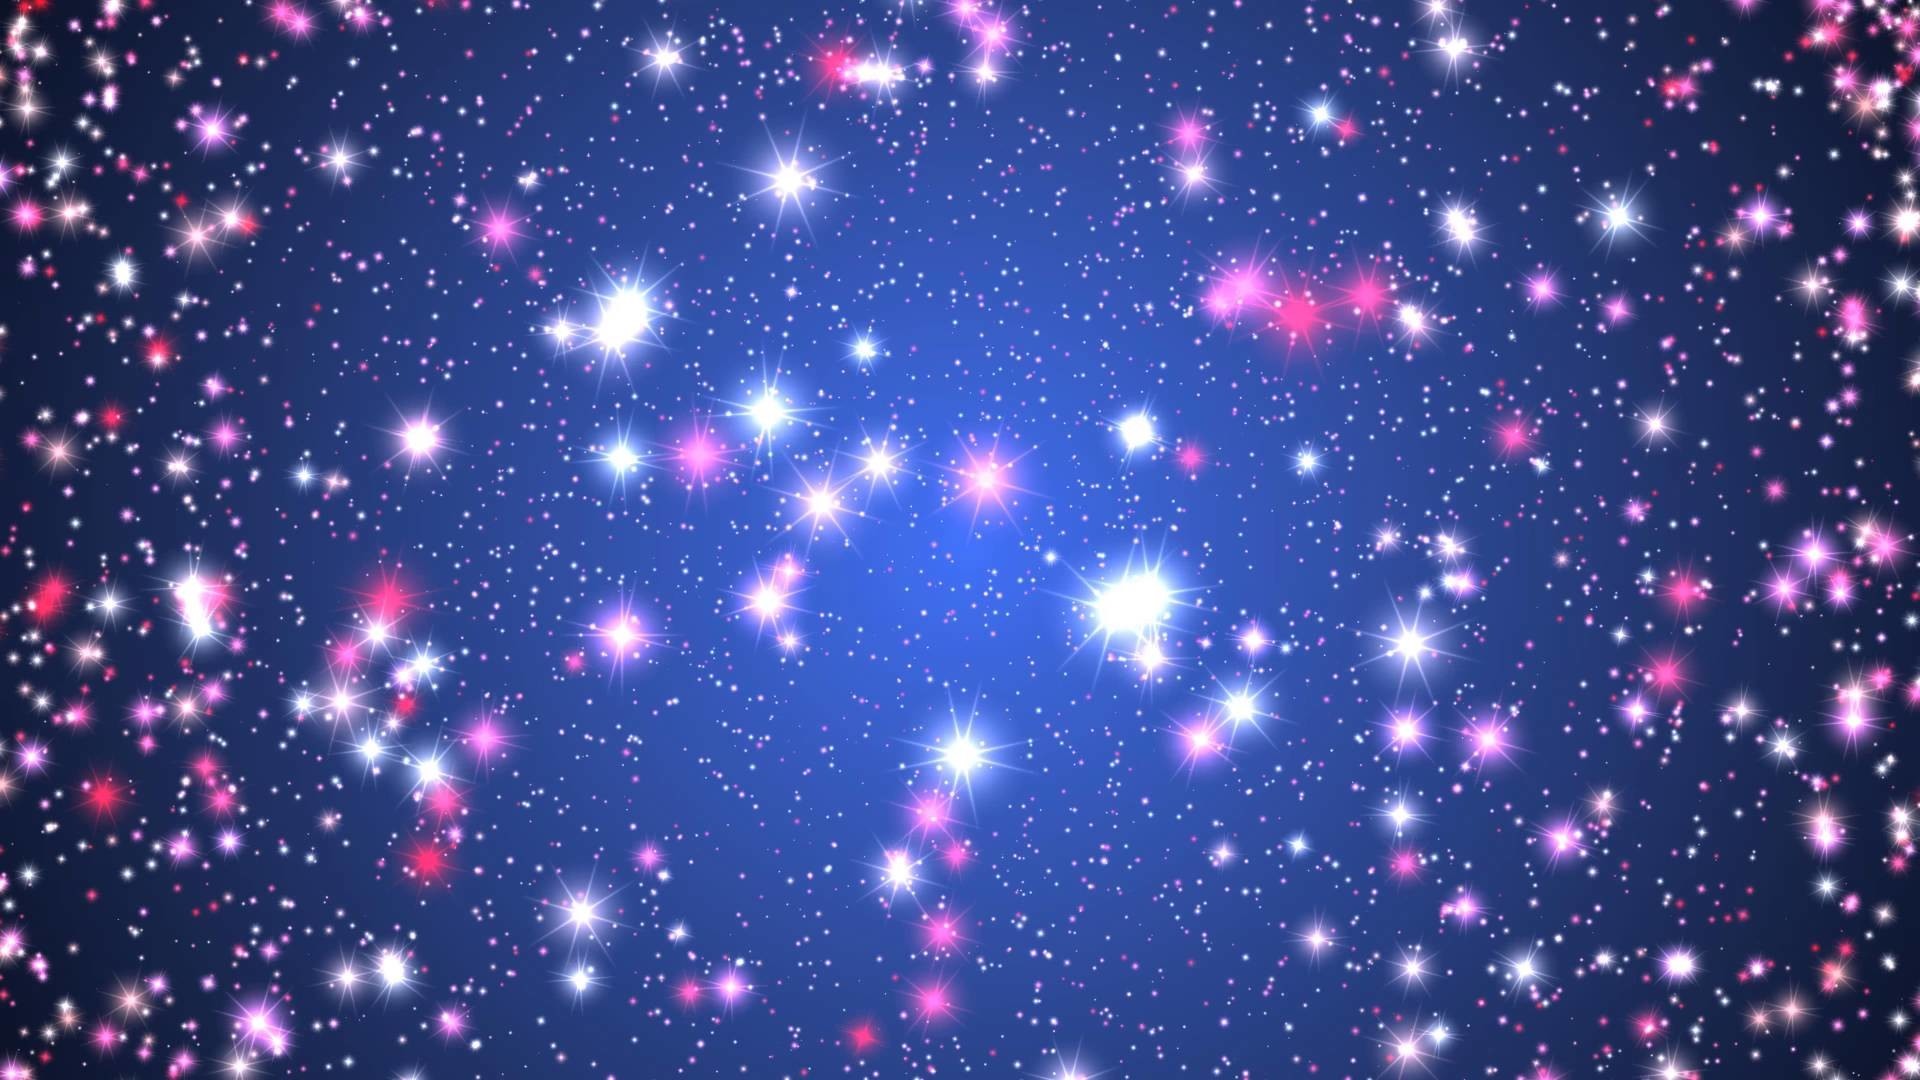 sparkly backgrounds that move 183��